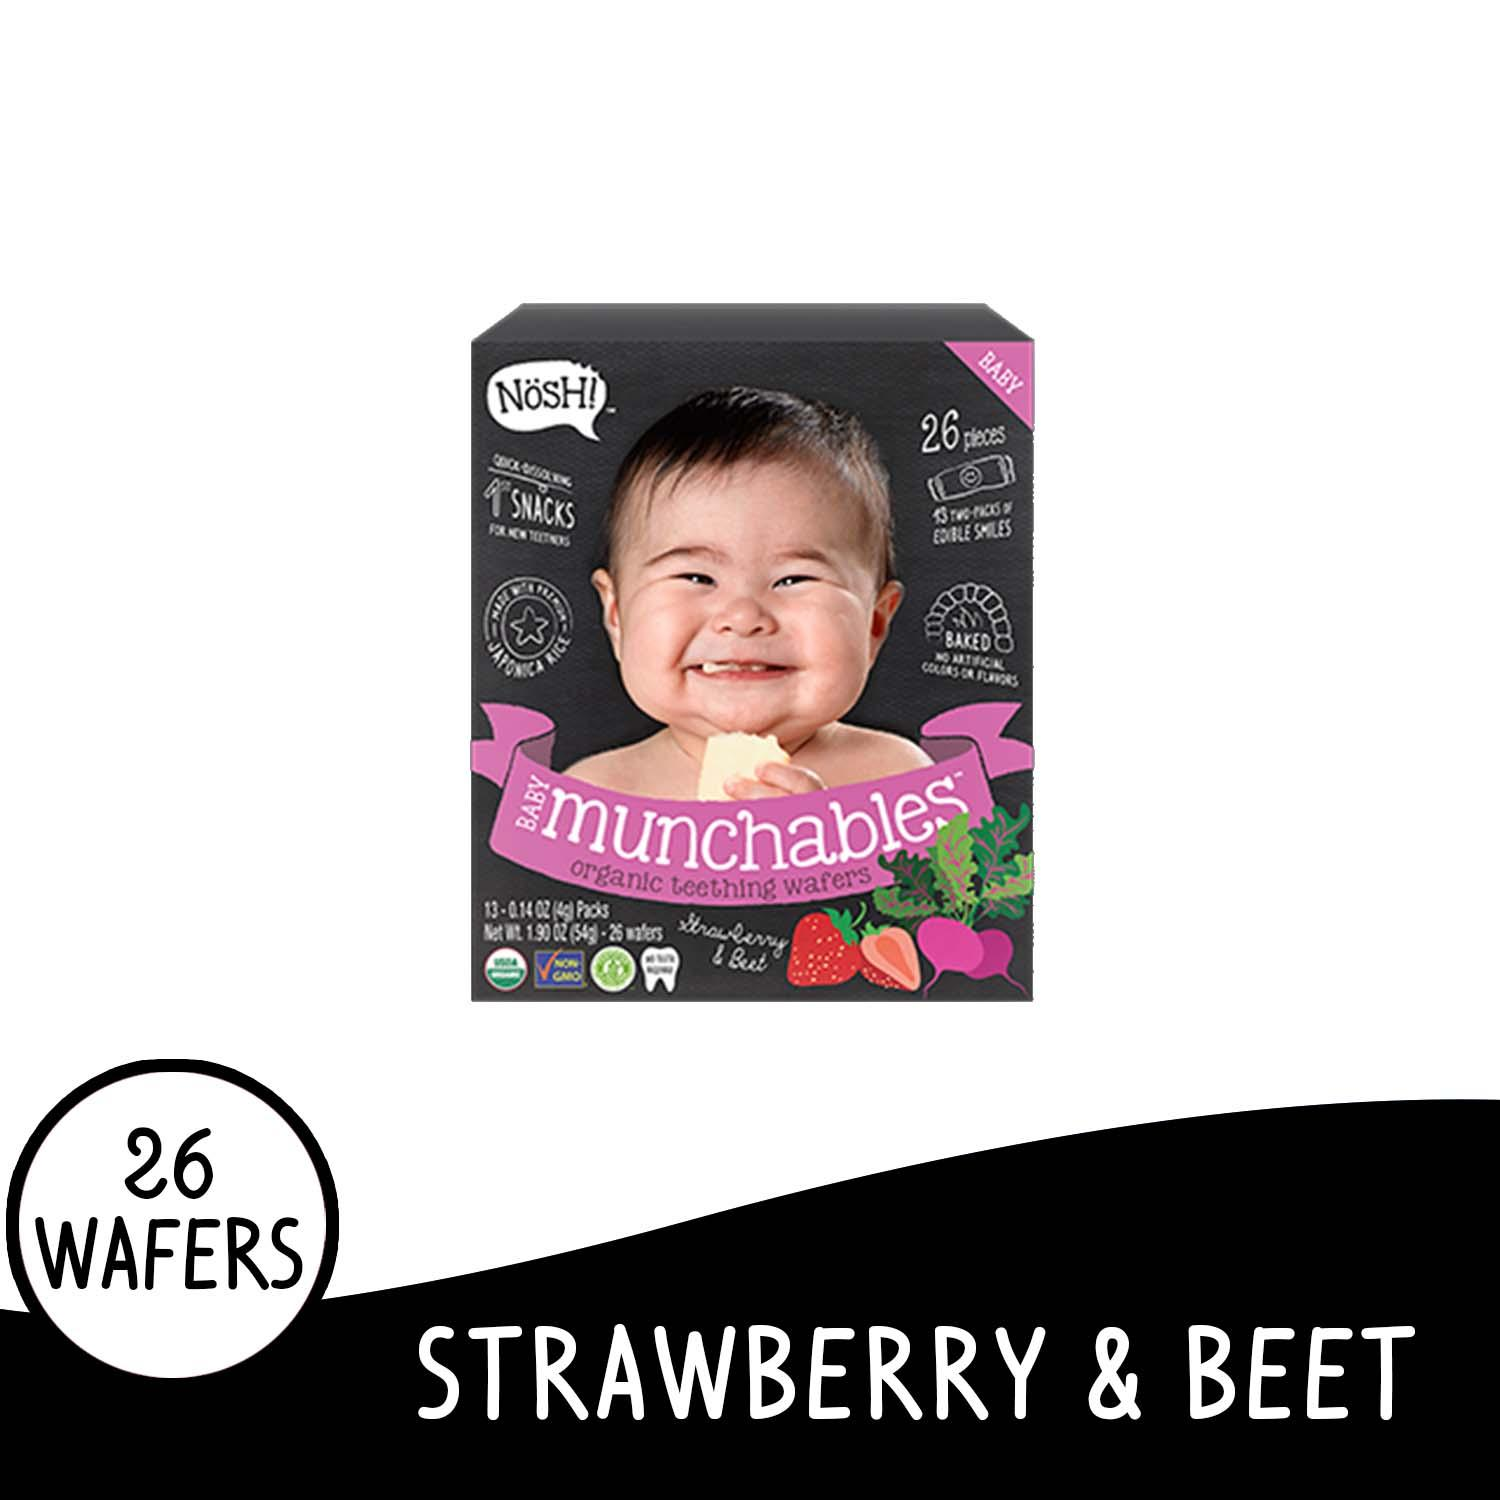 Nosh Baby Munchables Strawberry Beet By Nosh Baby Ph.